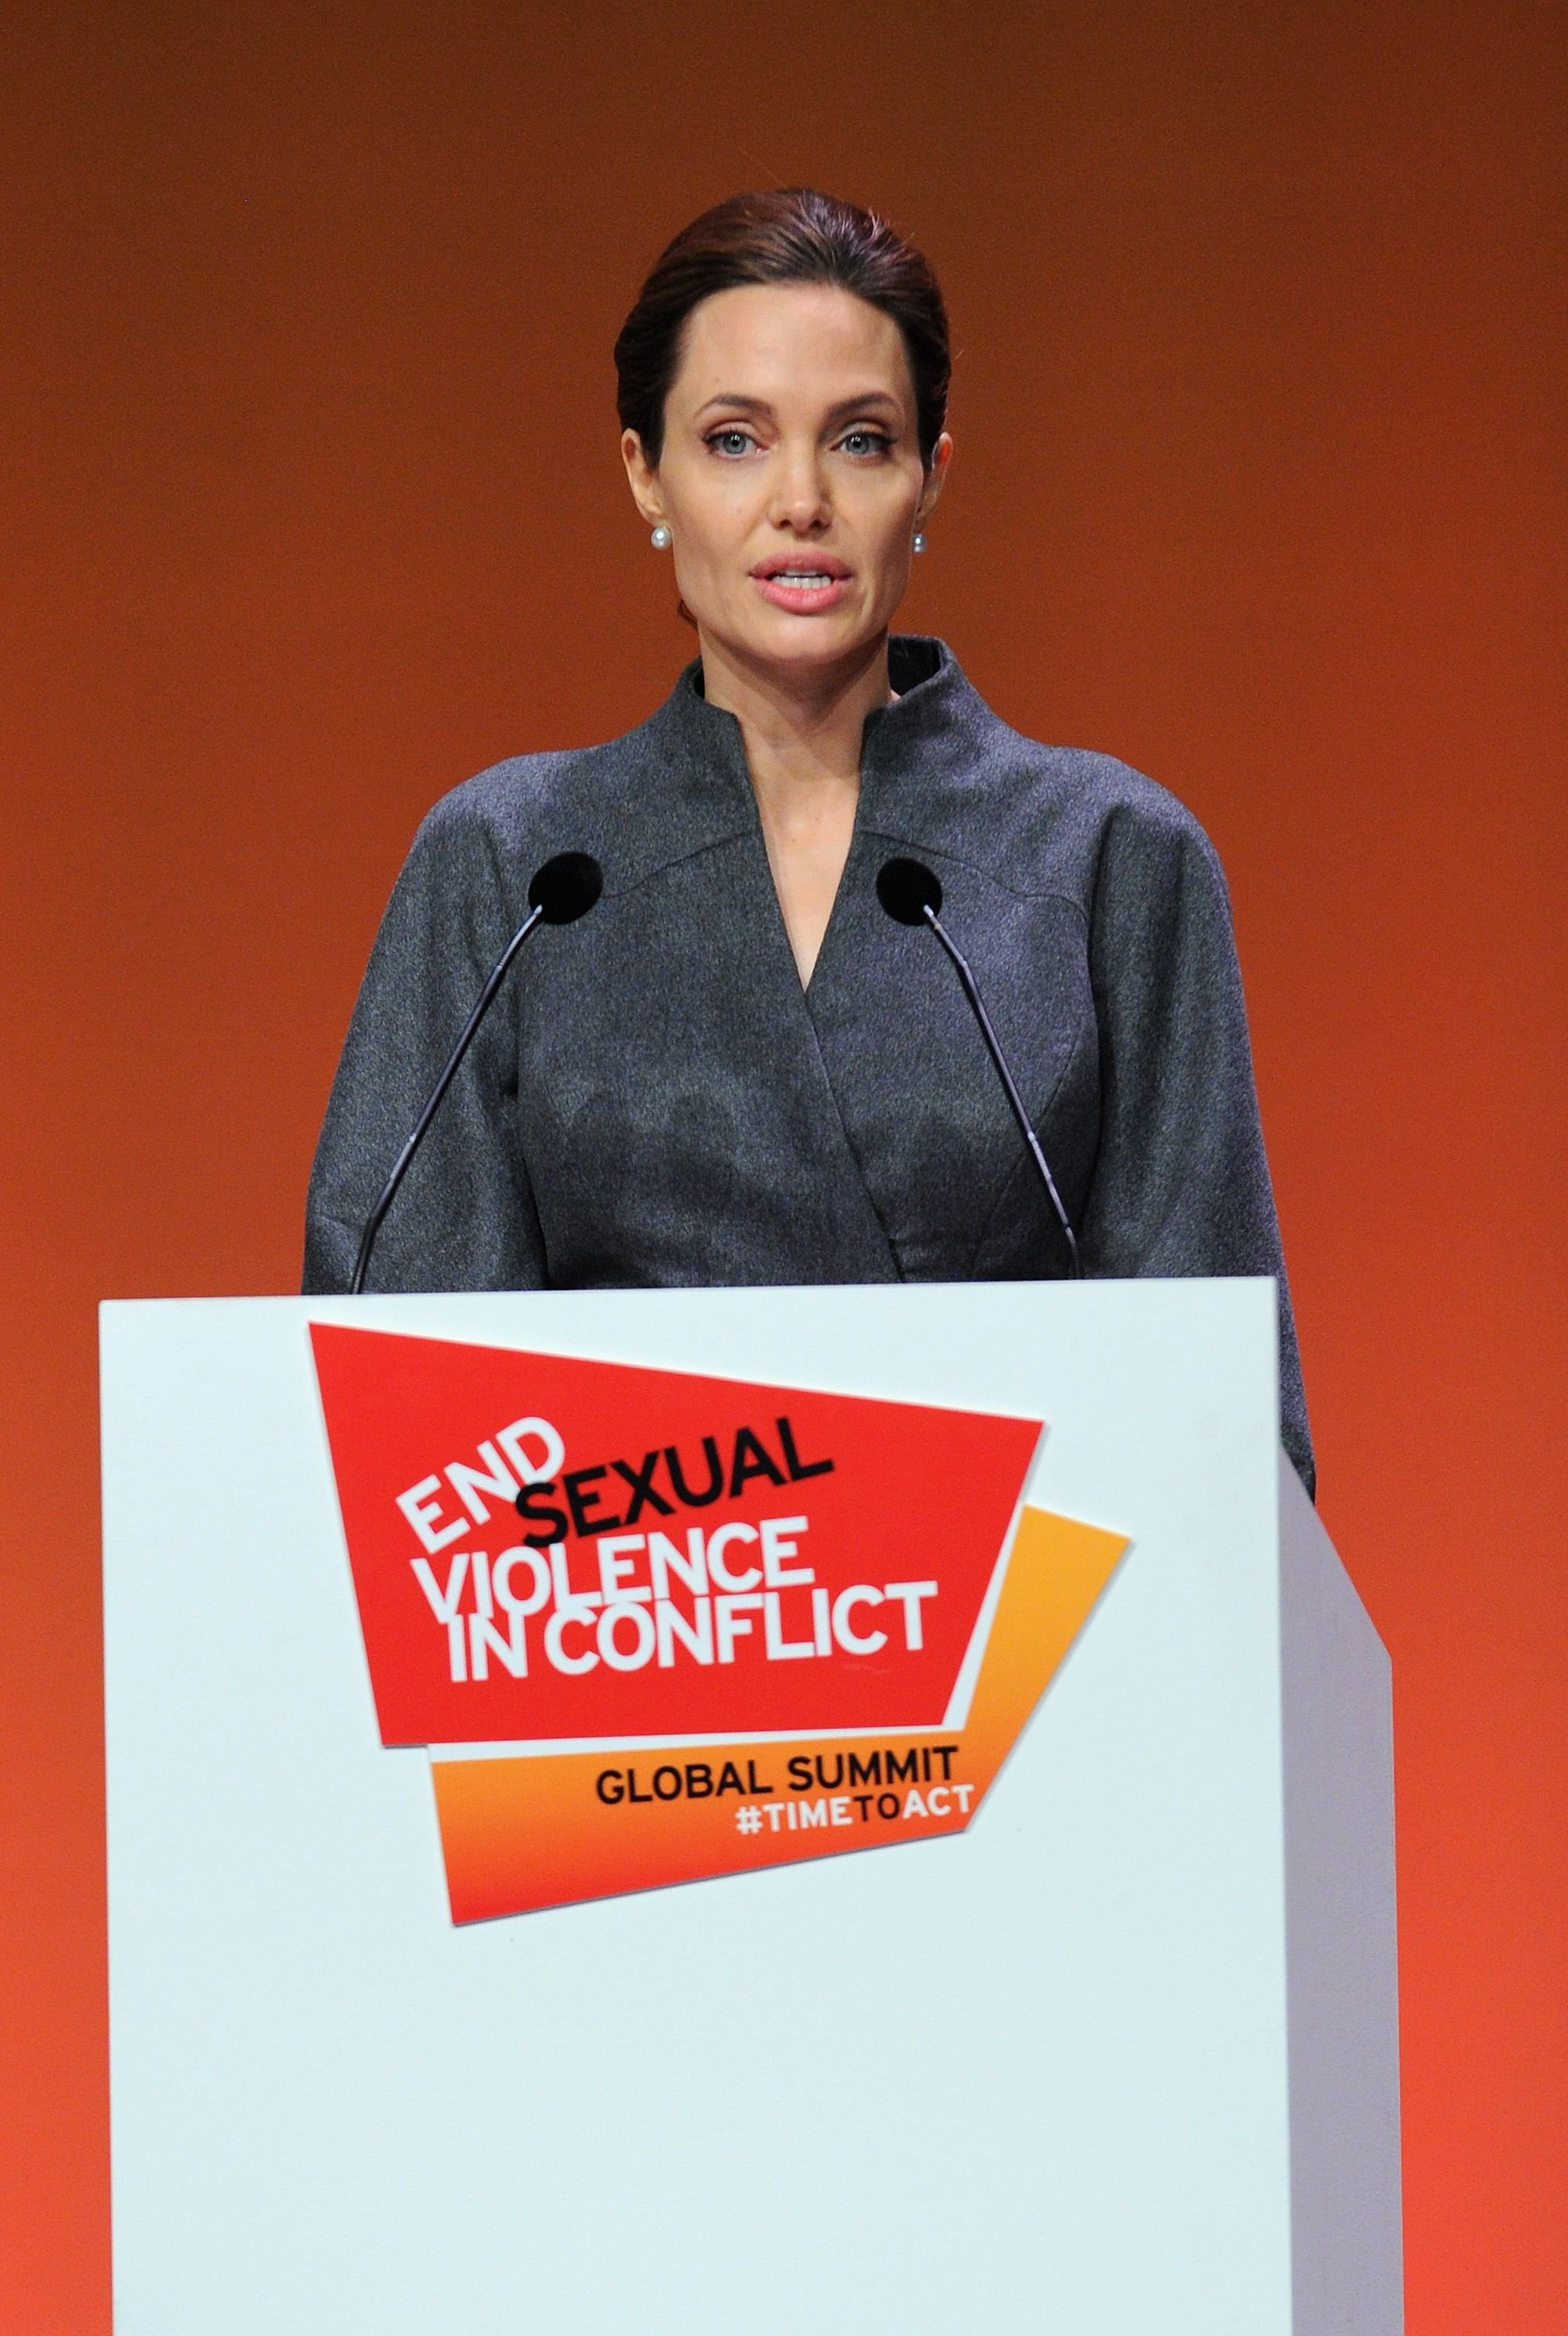 Angelina Jolie at the Global Summit to End Sexual Violence in Conflict in London in 2014 | Source: Getty Images